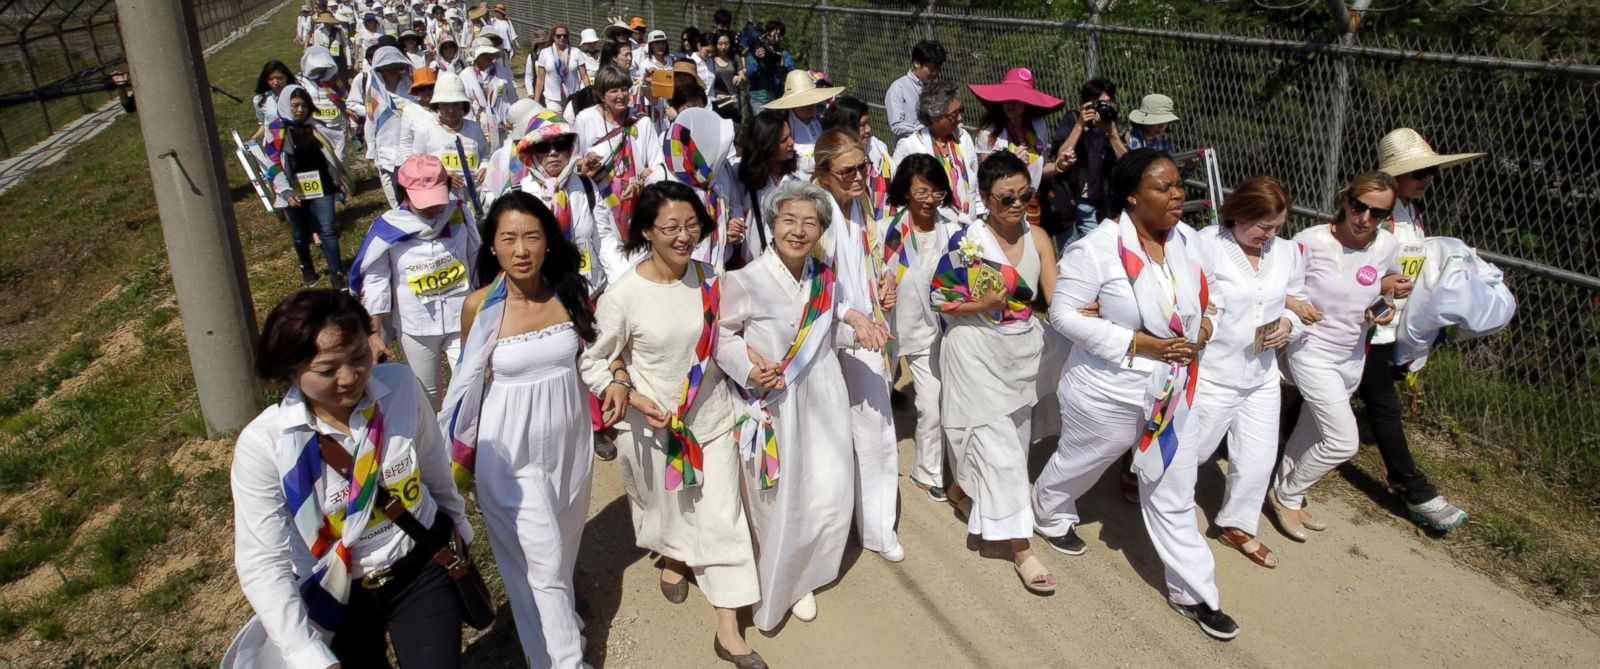 PHOTO: Gloria Steinem, Mairead Maguire, Leymah Gbowee, and other activists march to the Imjingak Pavilion with South Korean activists along the military wire fences near the border village of Panmunjom, in Paju, north of Seoul, South Korea, May 24, 2015.